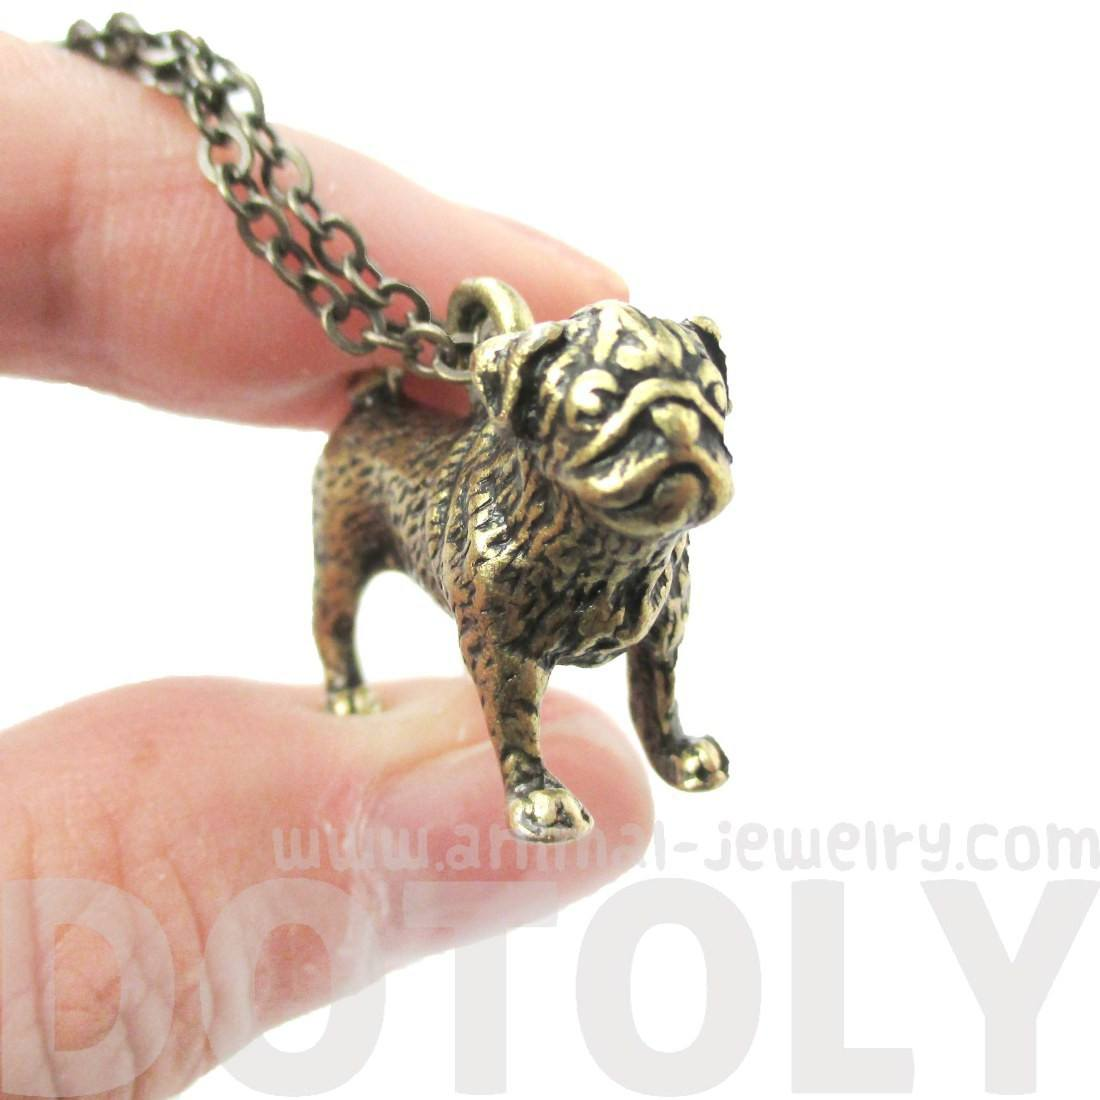 3D Realistic Life Like Pug Shaped Animal Pendant Necklace in Brass